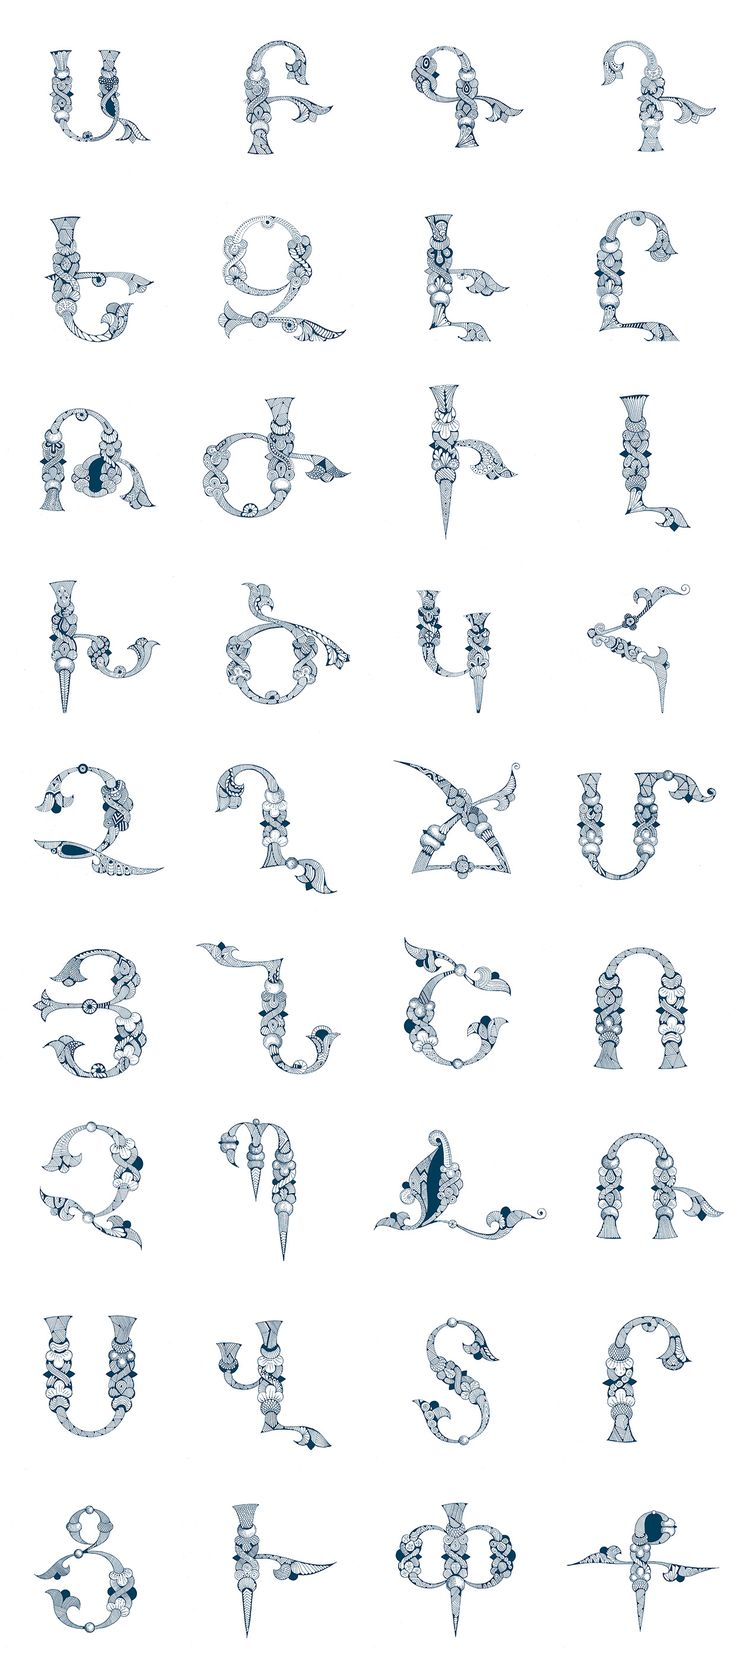 Armenian Alphabet by Narek Gyulumyan on Behance